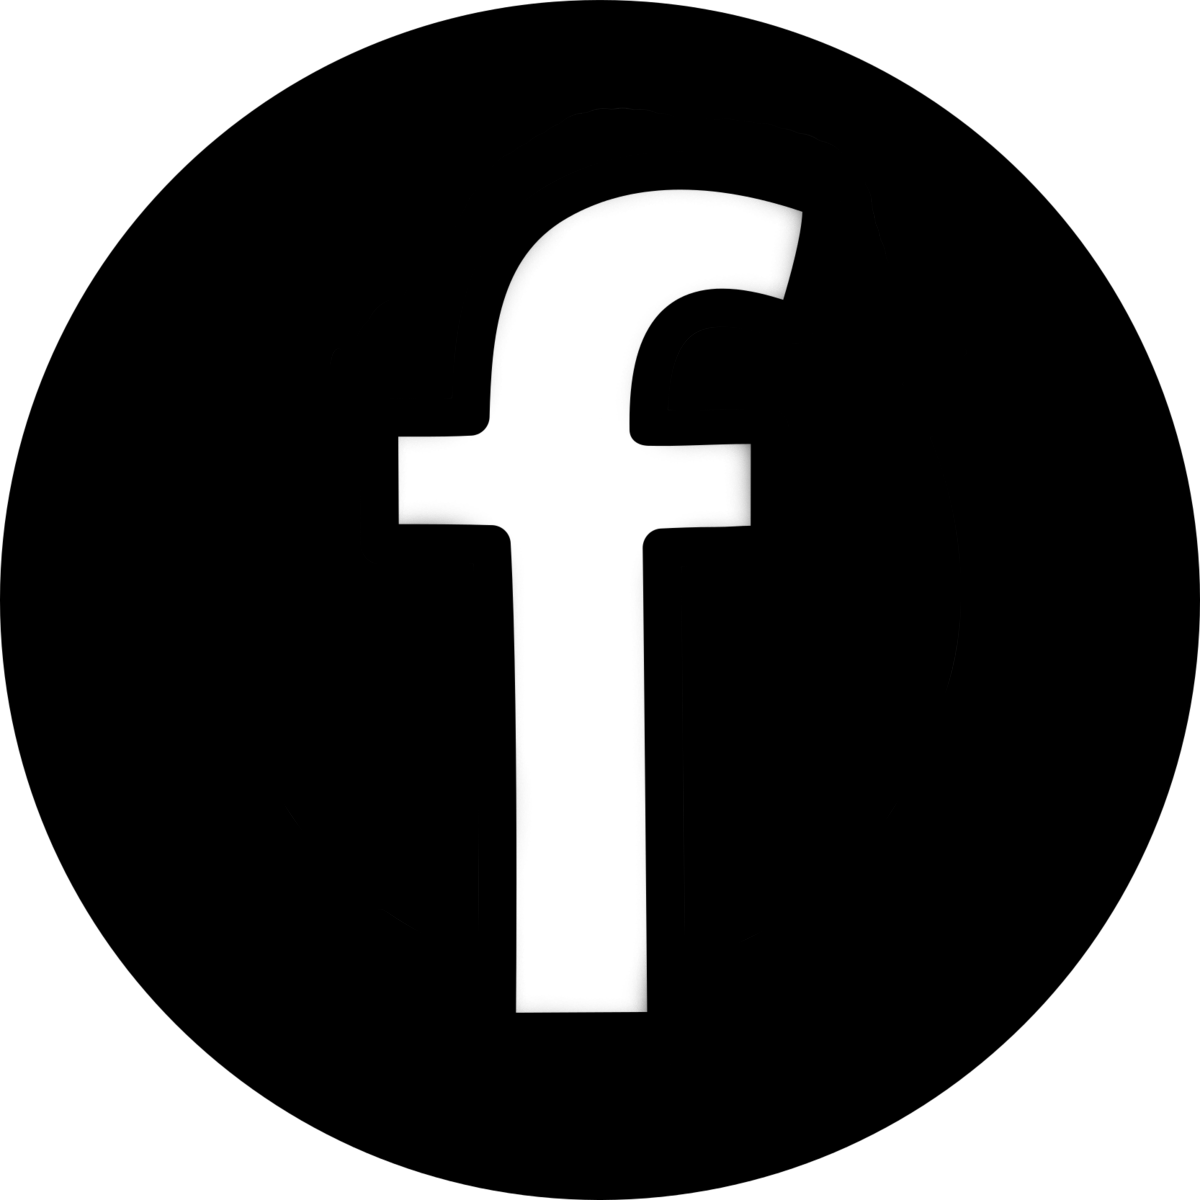 black and white facebook logo transparency pictures to pin